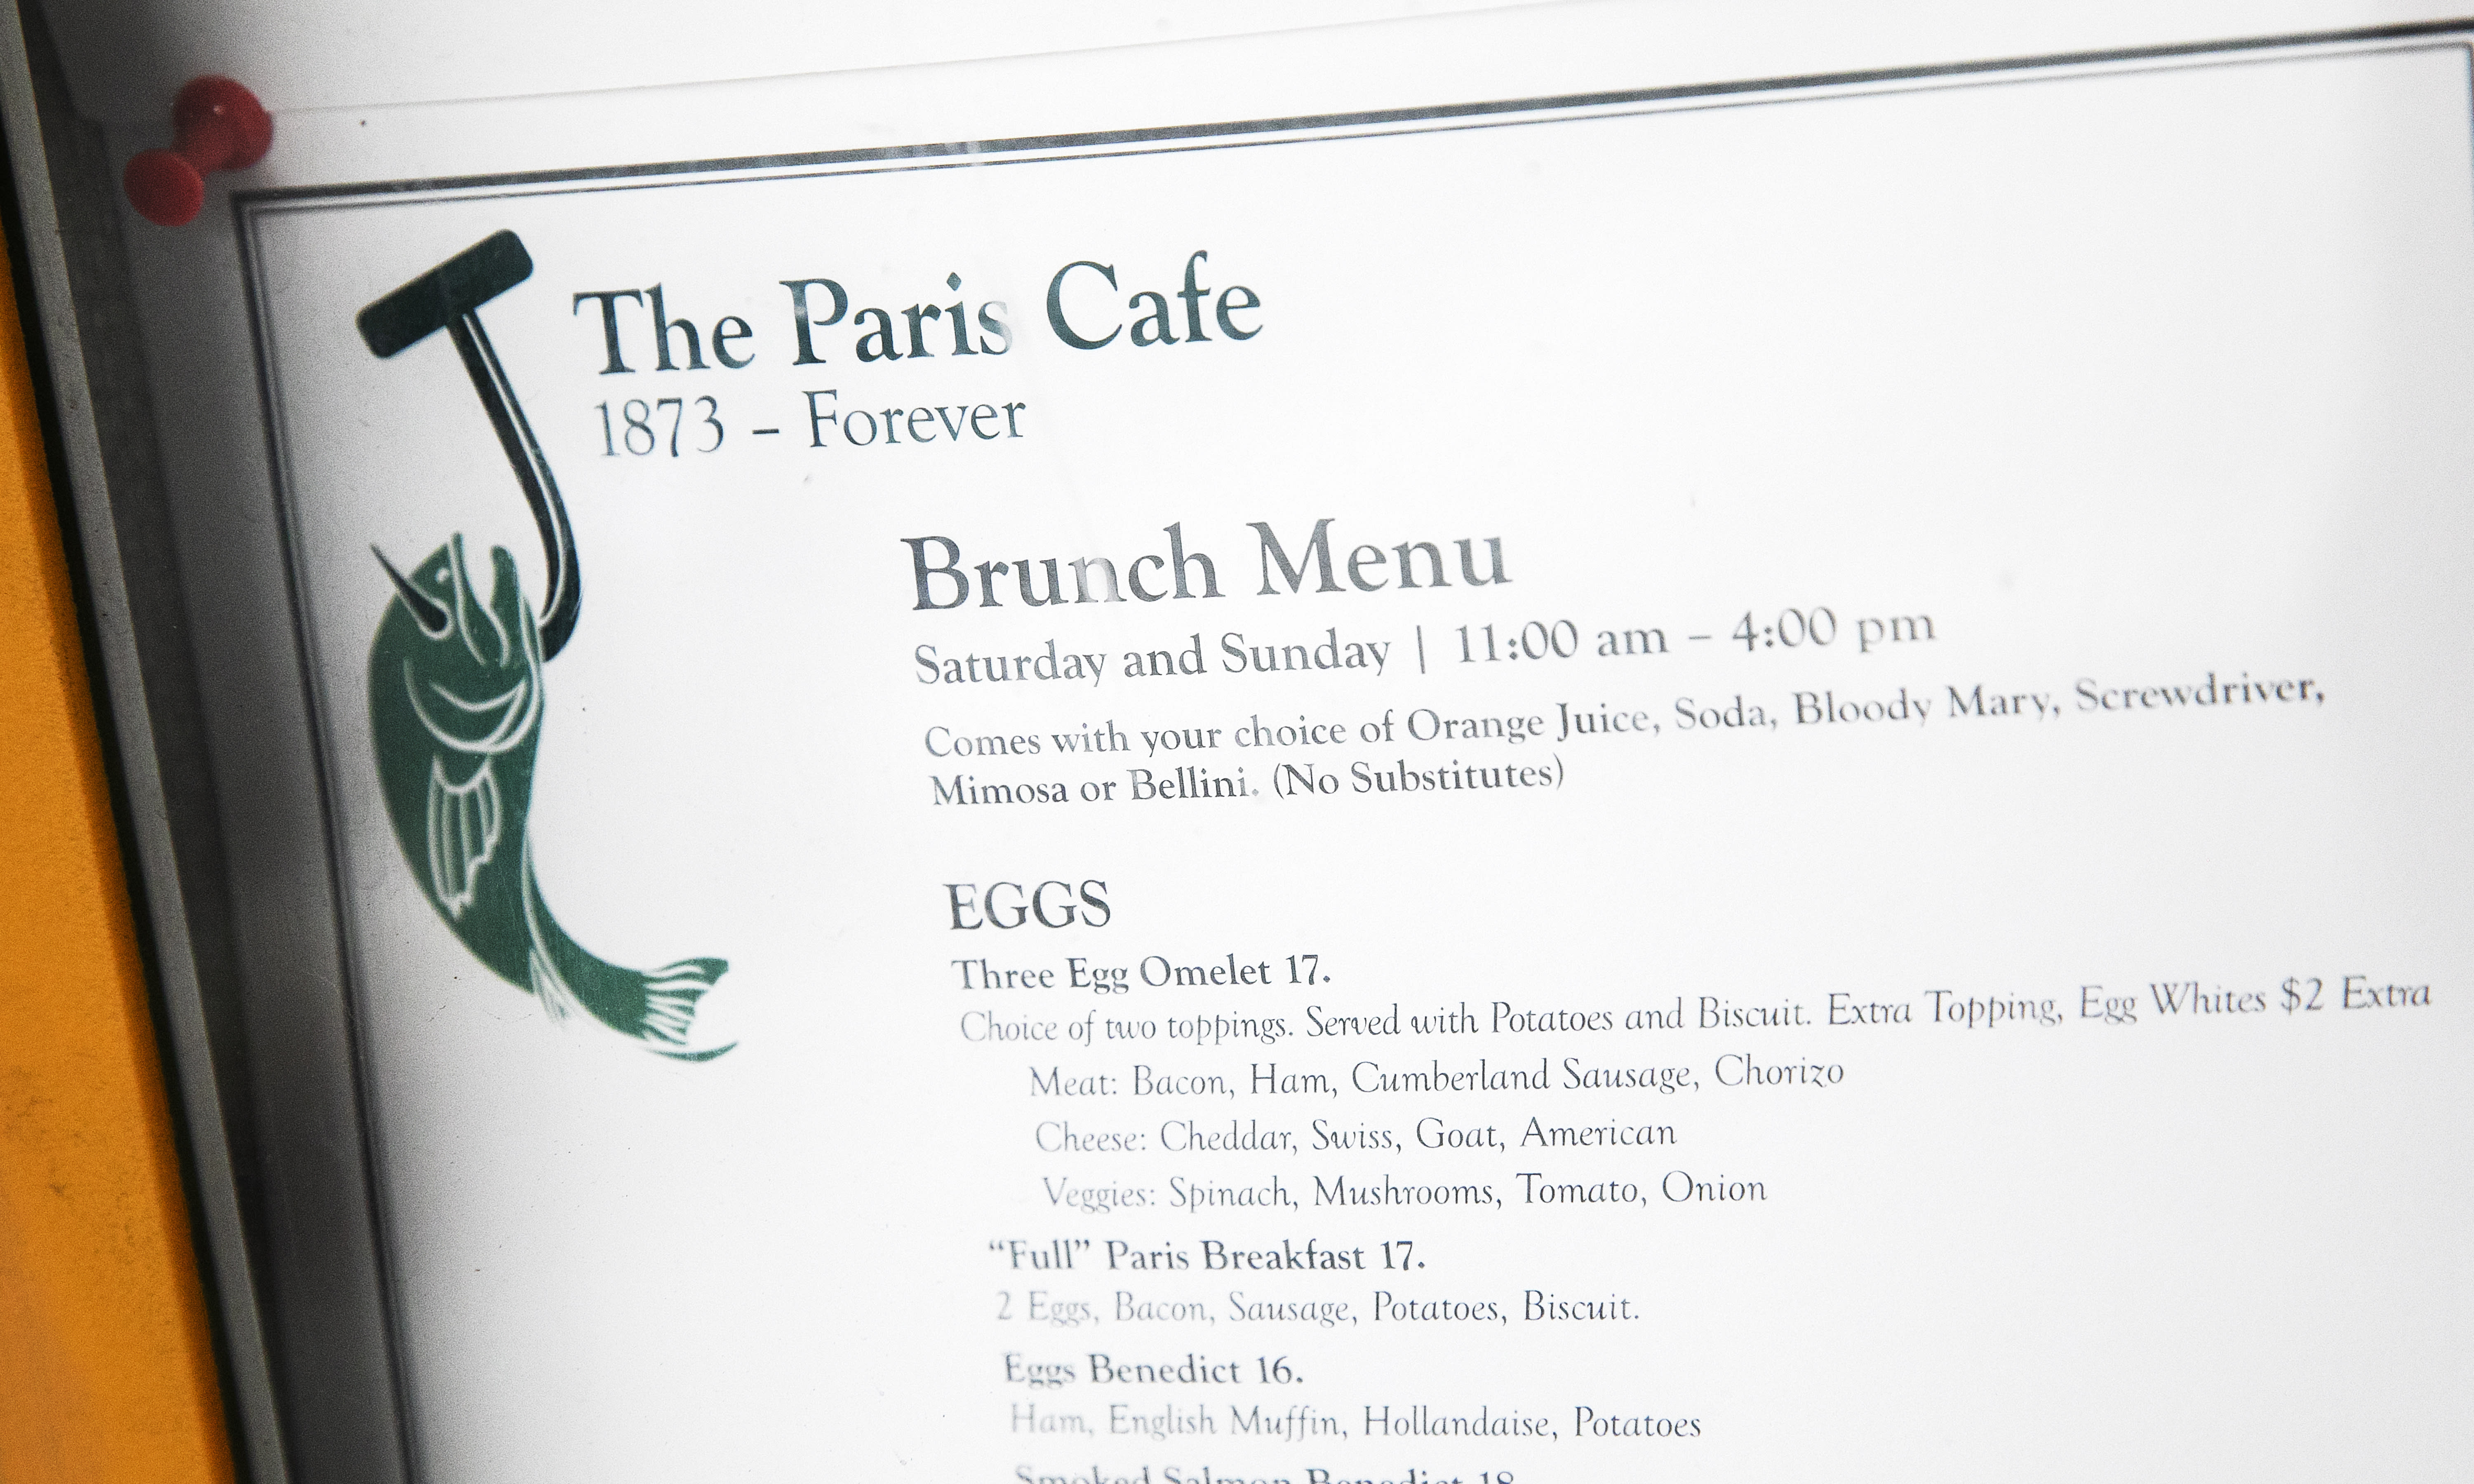 The menu for the Paris Cafe hangs in its front window, Tuesday, Aug. 4, 2020 in New York. Many iconic bars, dinners and restaurants have closed or are teetering towards closing due to the coronavirus pandemic. (AP Photo/Mark Lennihan)